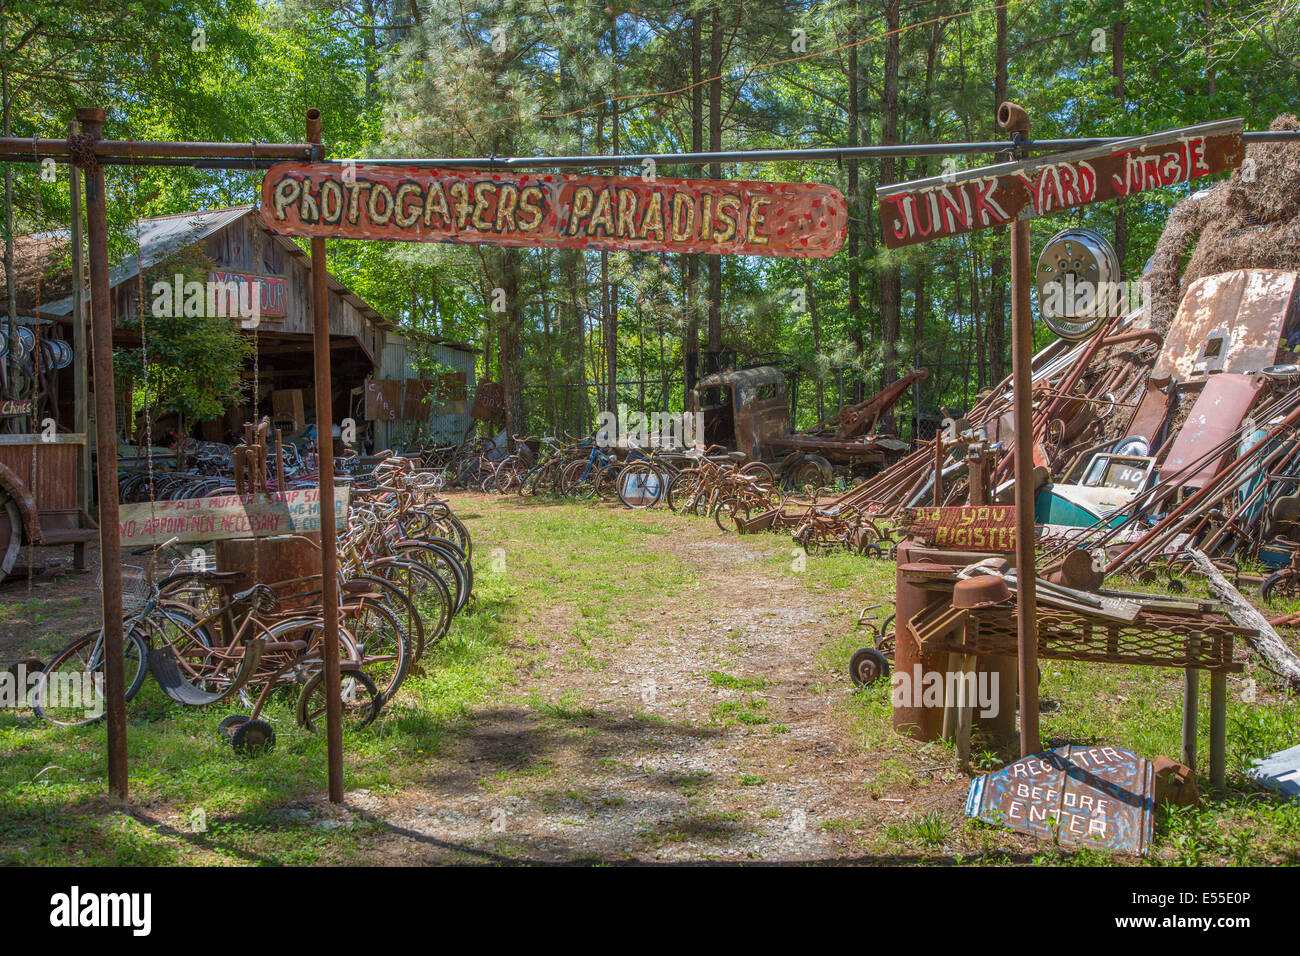 Entrance to Old Car City in White Georgia - Stock Image